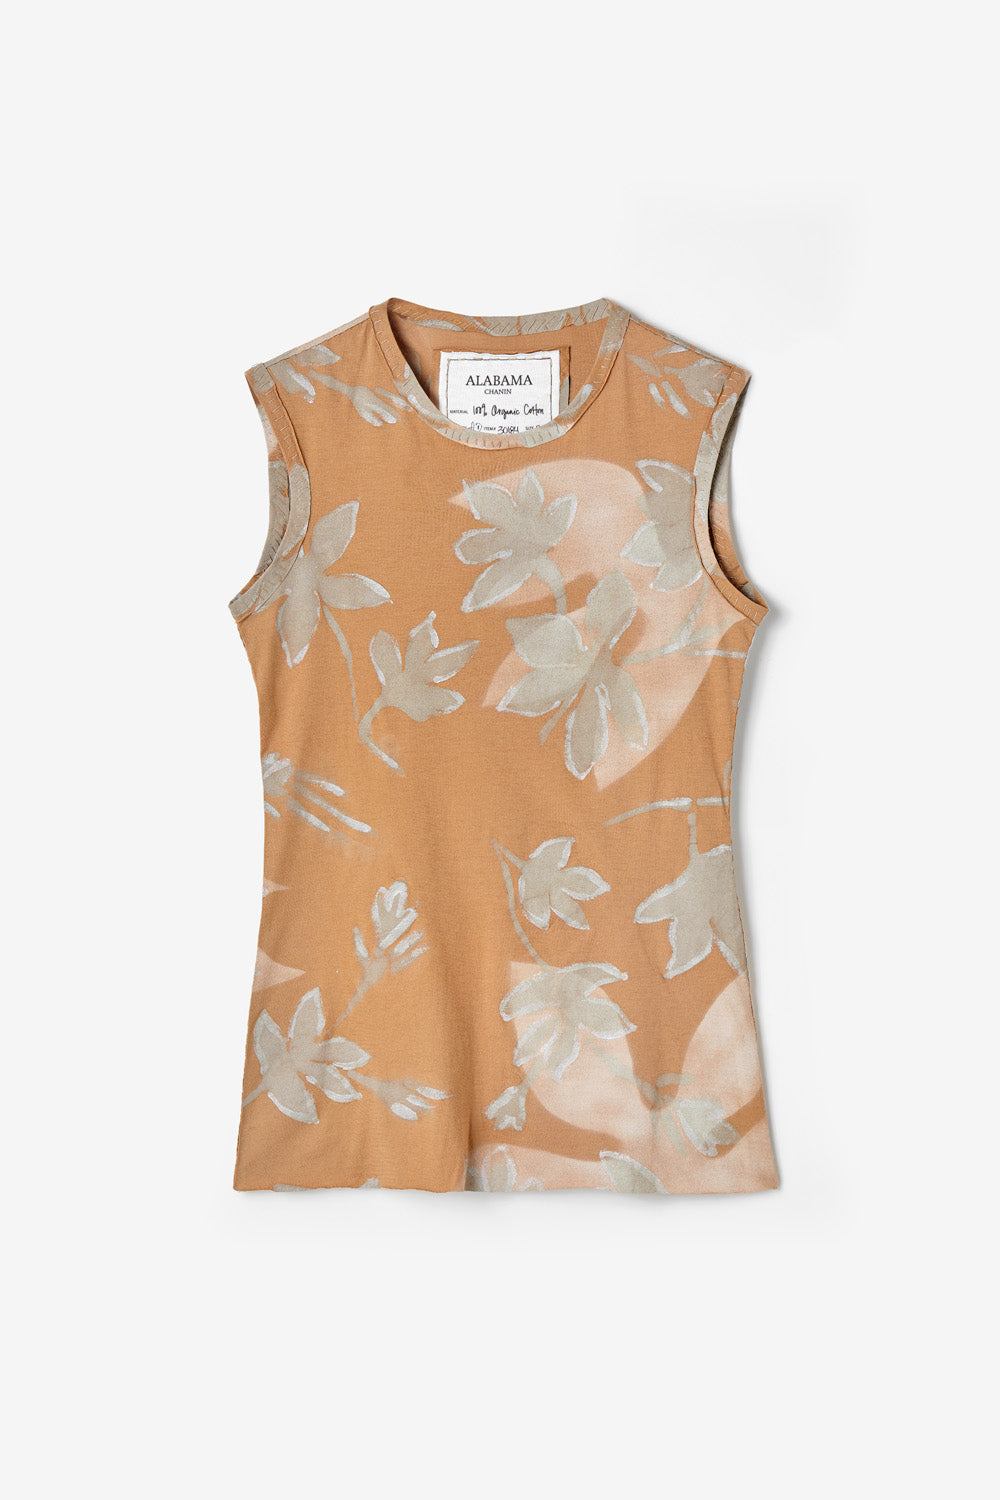 alabama chanin jude top sleeveless fitted top with hand painted floral pattern